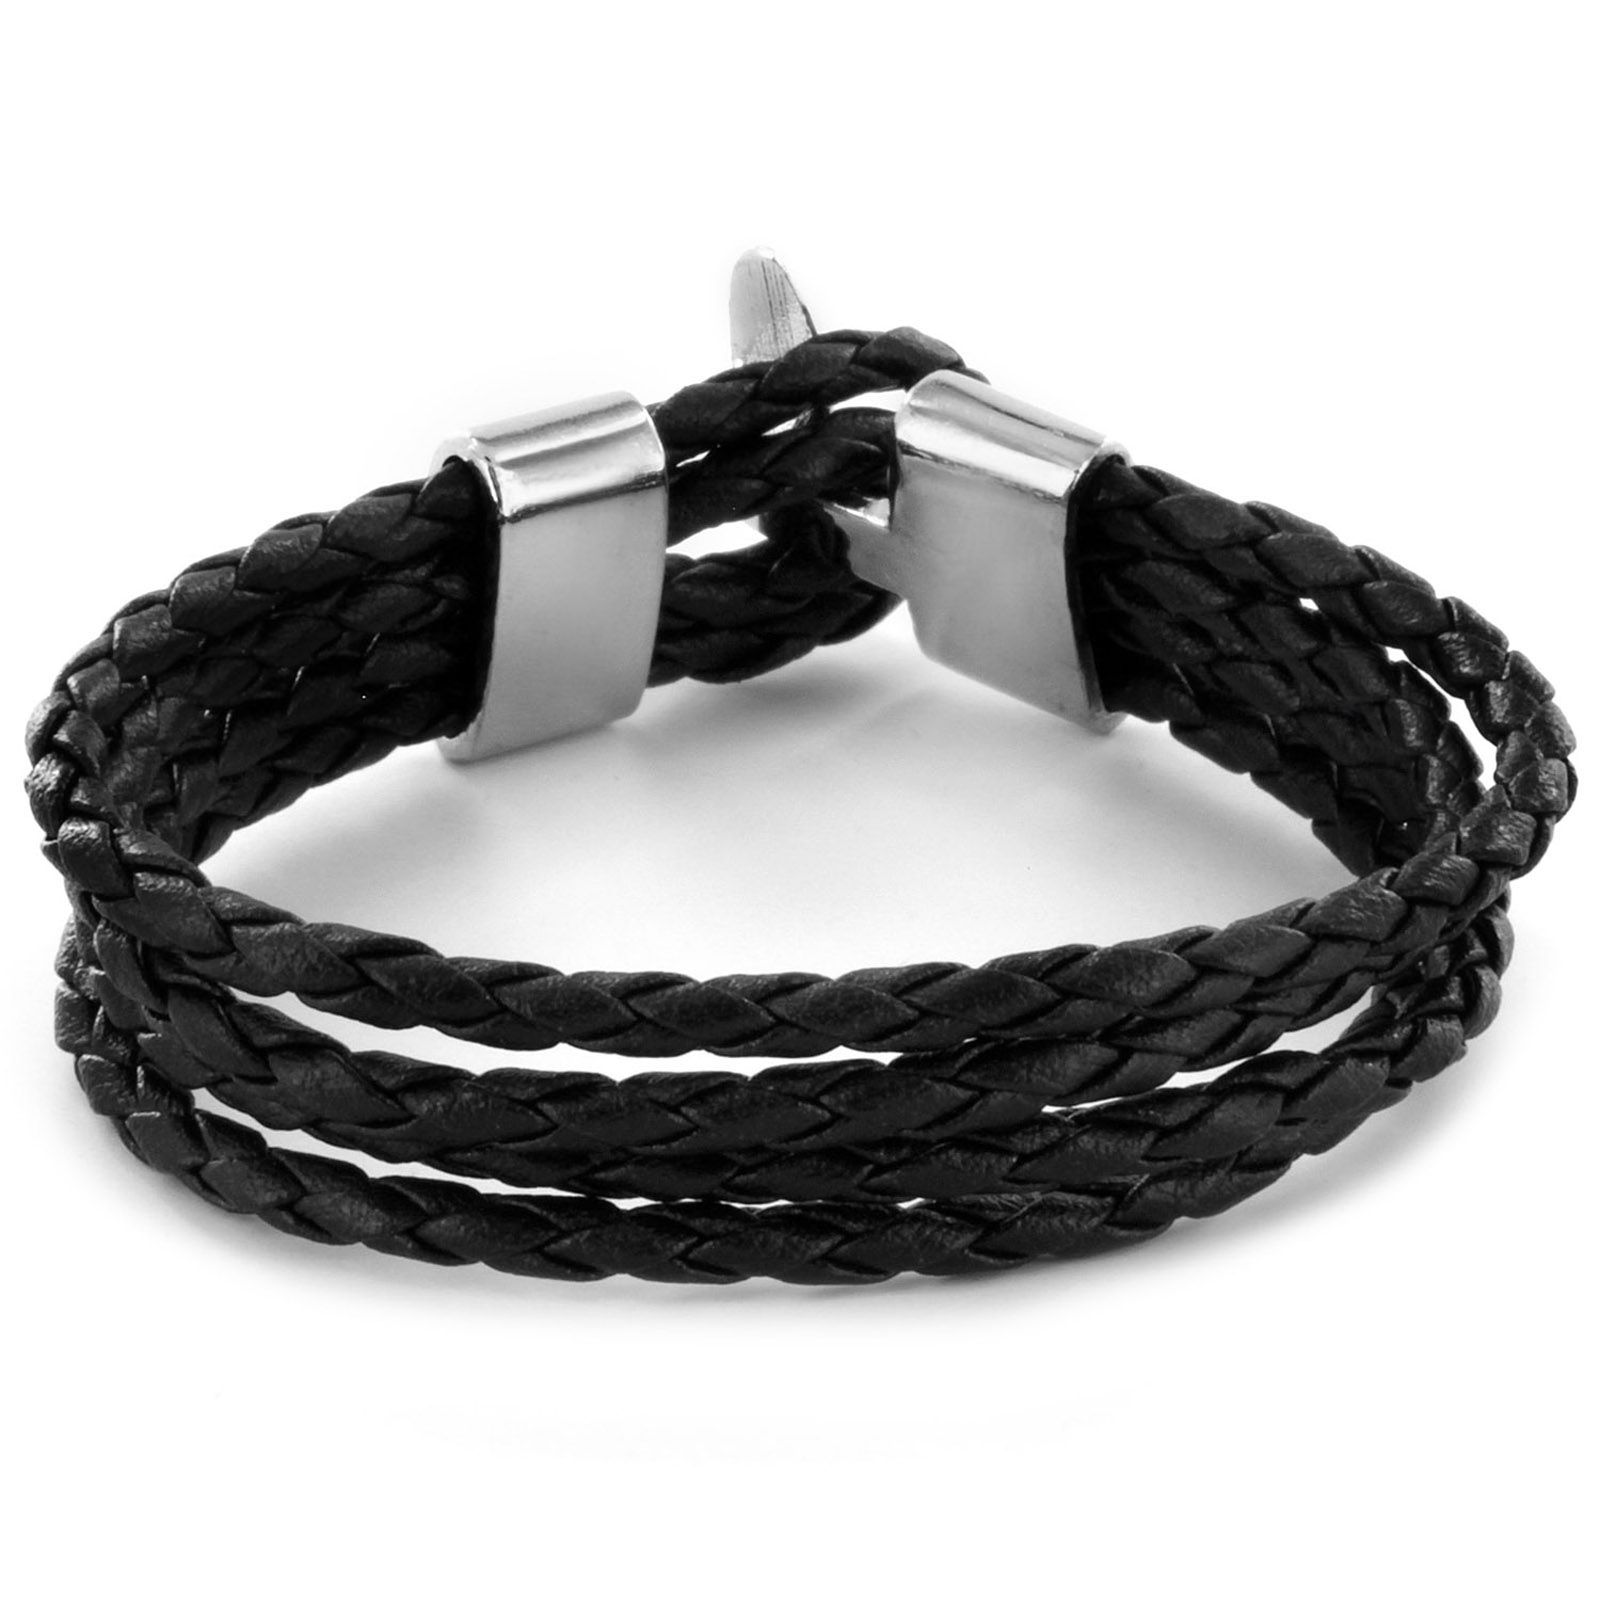 Braided Leather Multi-cord Bracelet